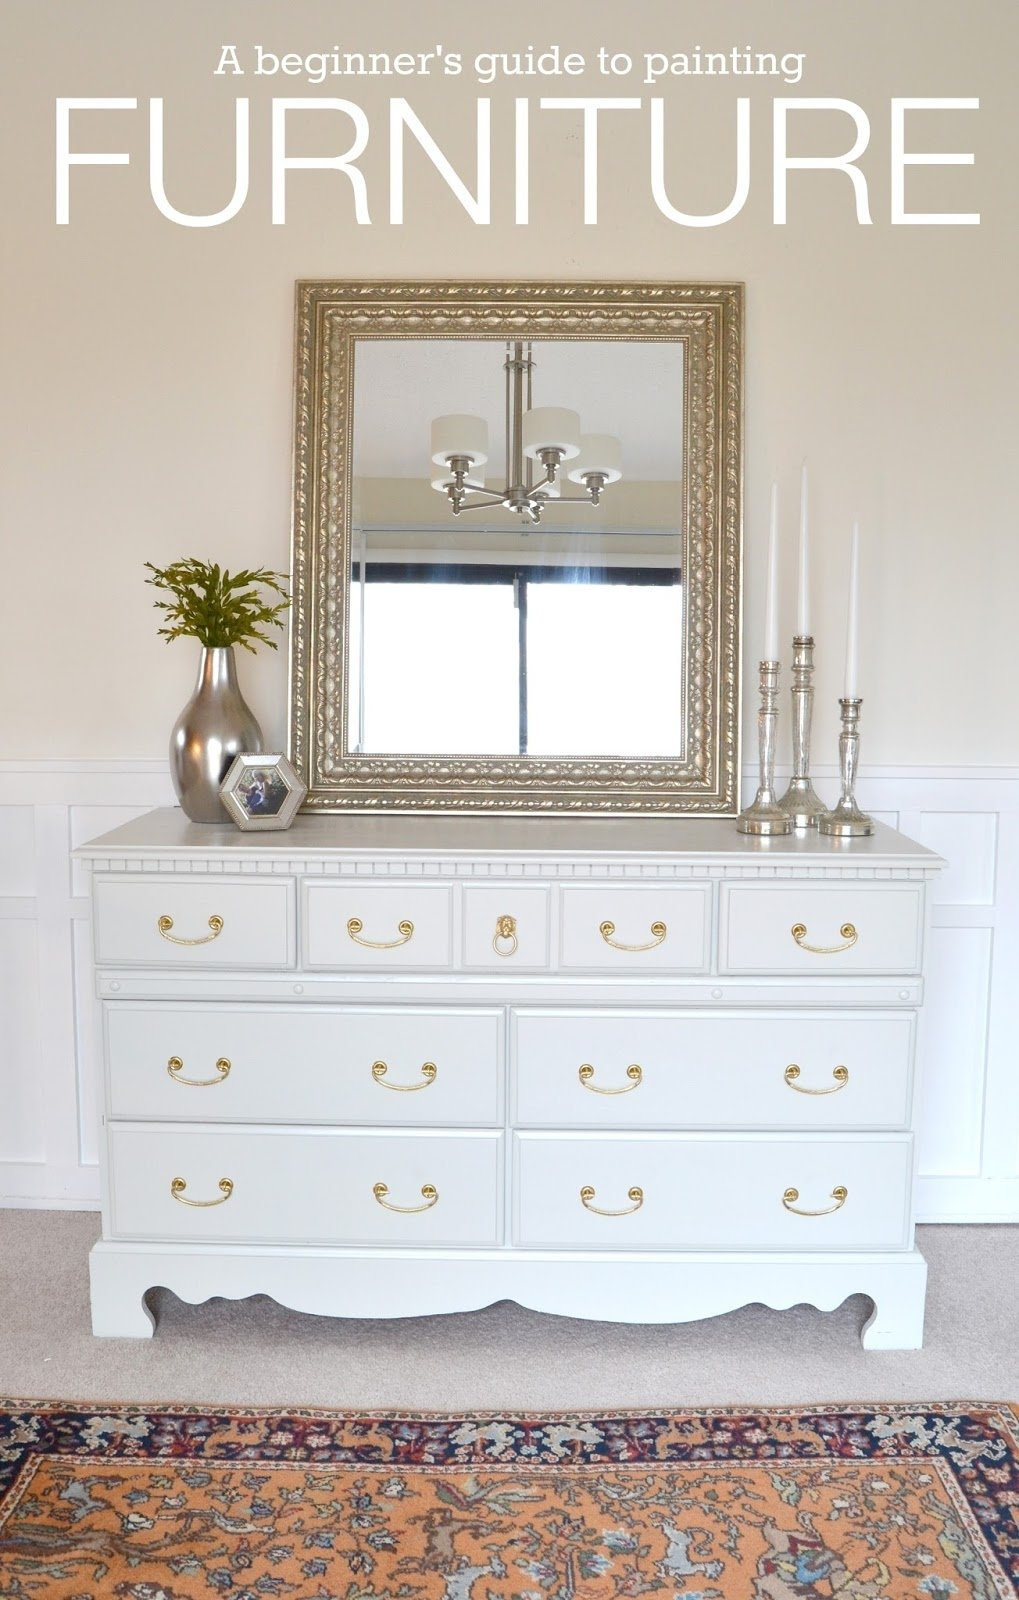 10 Famous Ideas For Painting A Dresser livelovediy how to paint furniture why its easier than you think 2020